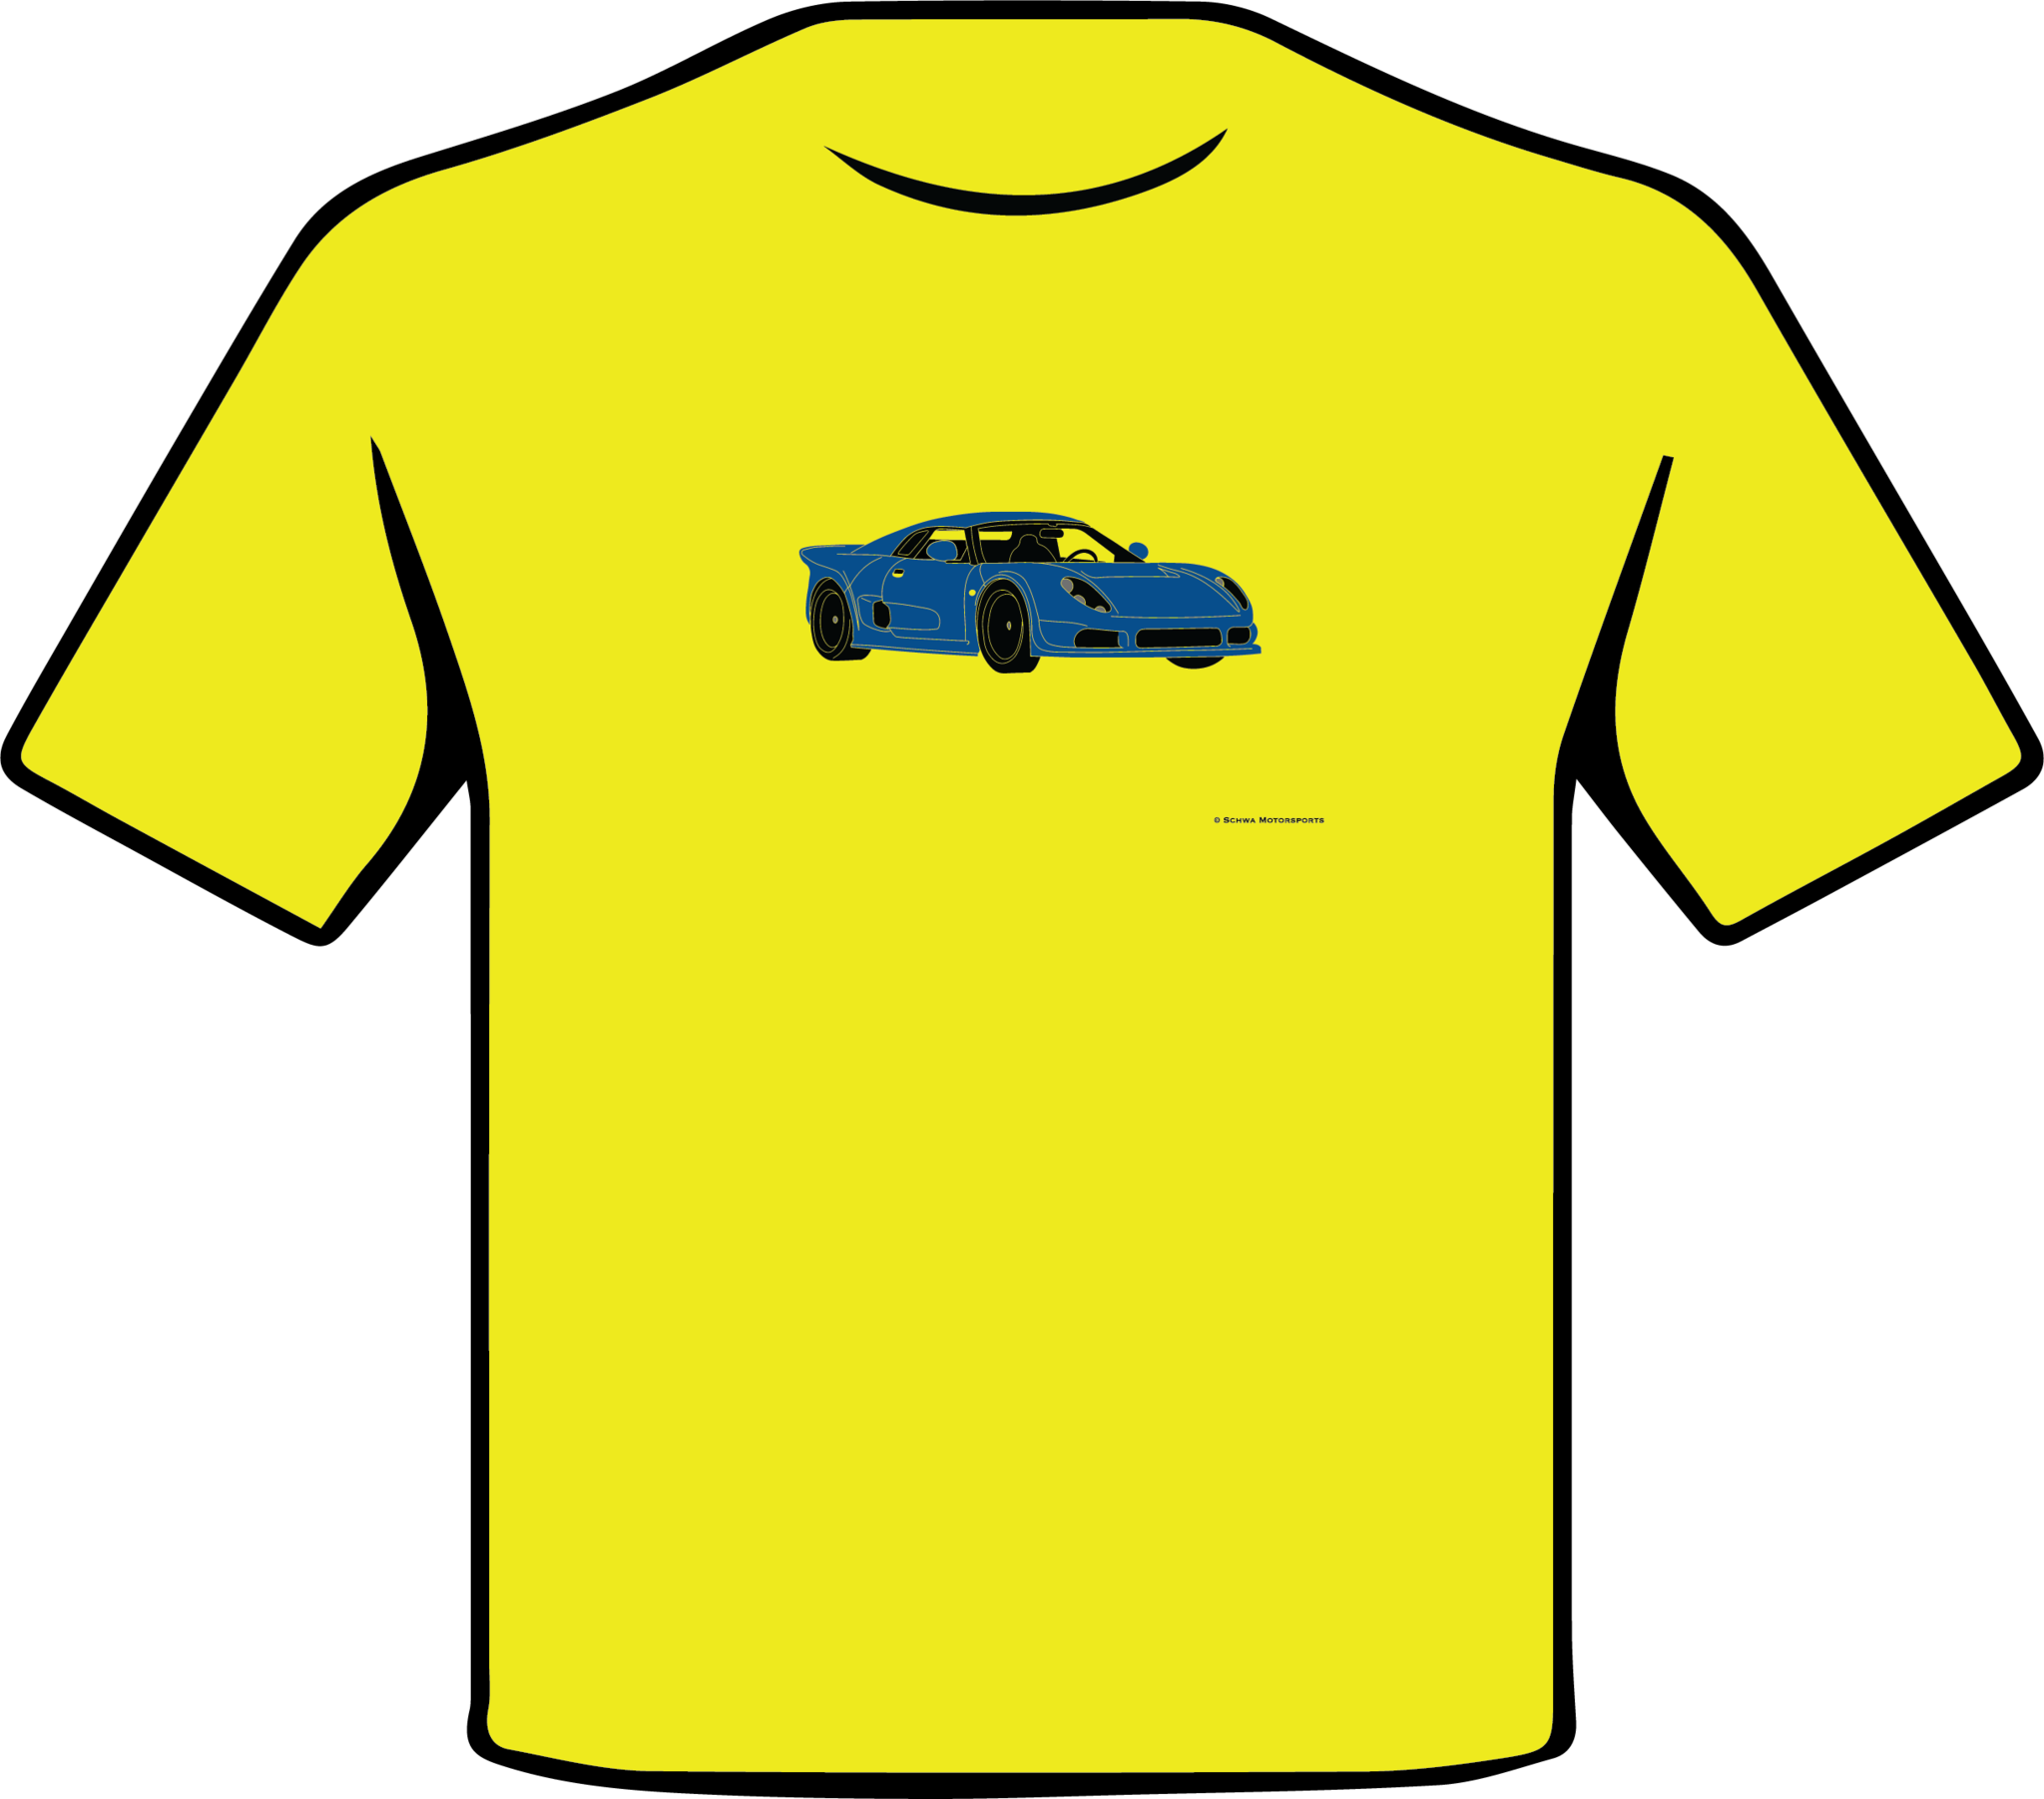 Noble M400 Front 3/4 Angle Multi Color T-Shirt